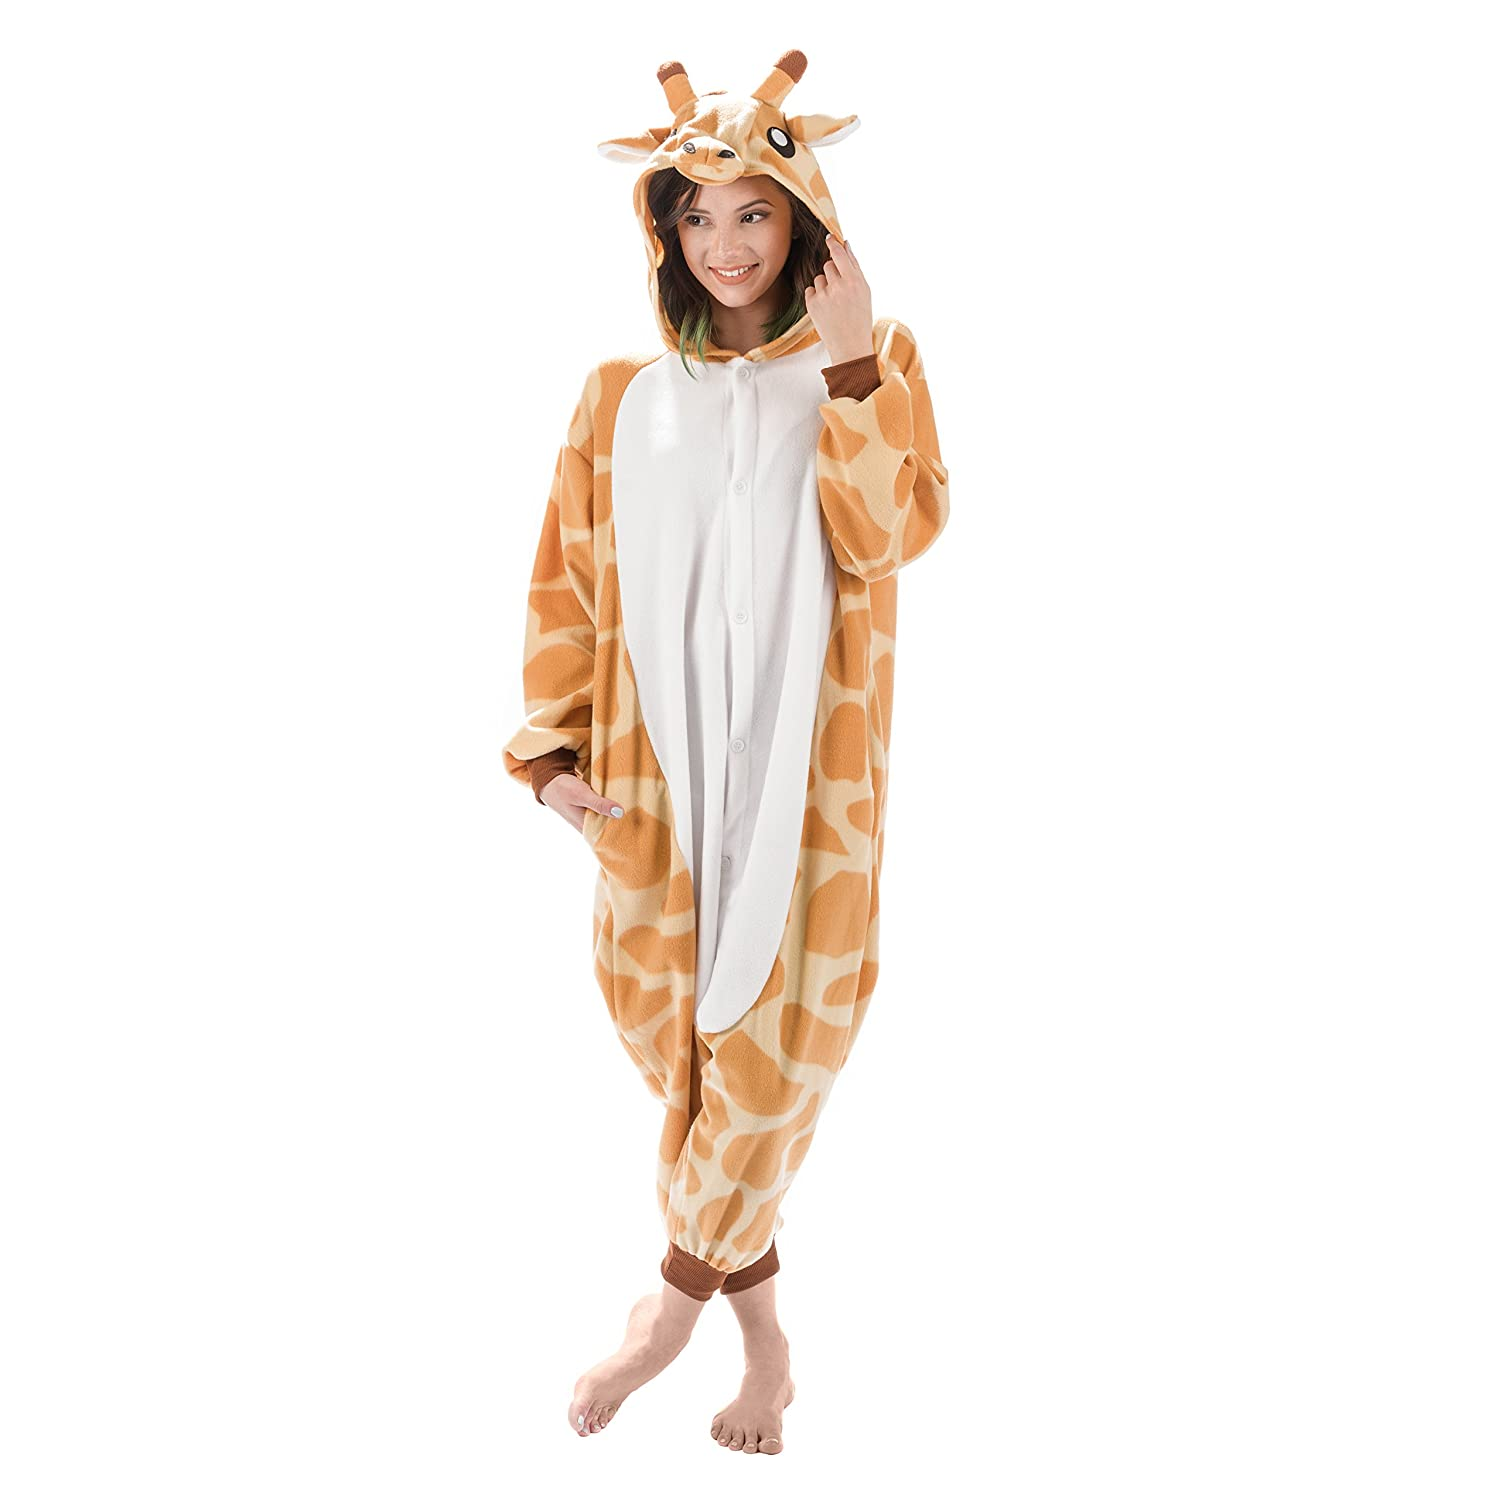 amazoncom emolly fashion adult giraffe animal onesie costume pajamas for adults and teens x large giraffe clothing